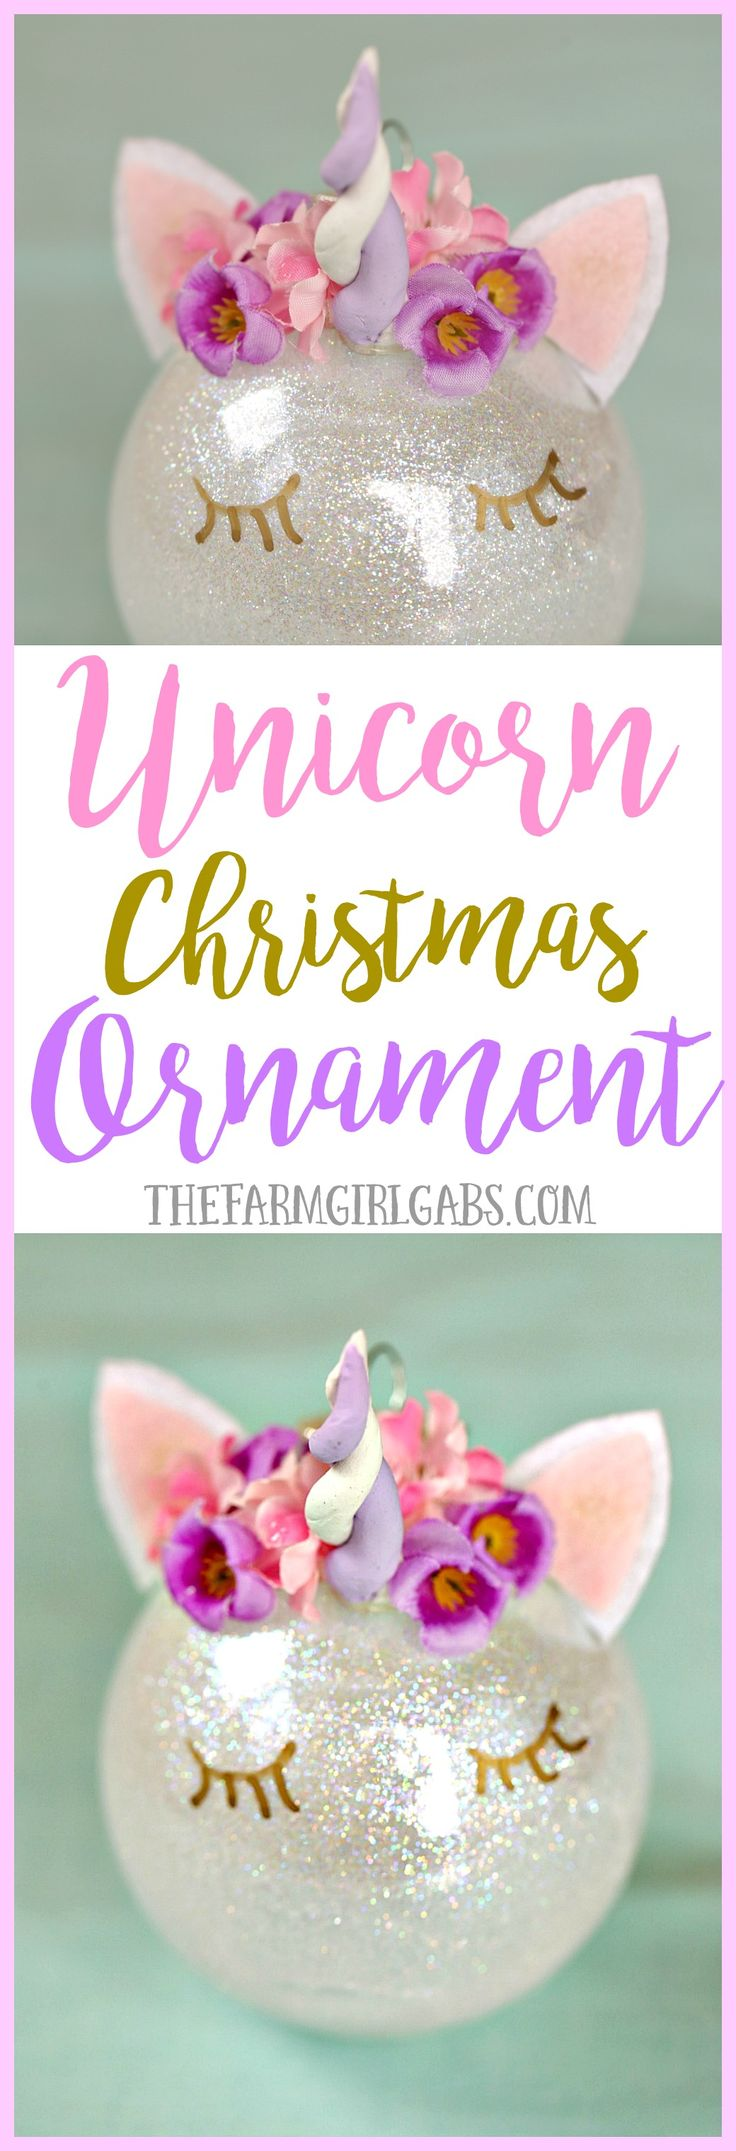 This magical Unicorn Christmas Ornament is an easy DIY ornament to make for your Christmas tree this year! #Ornaments #Christmas #DIY #PPHOLIDAY